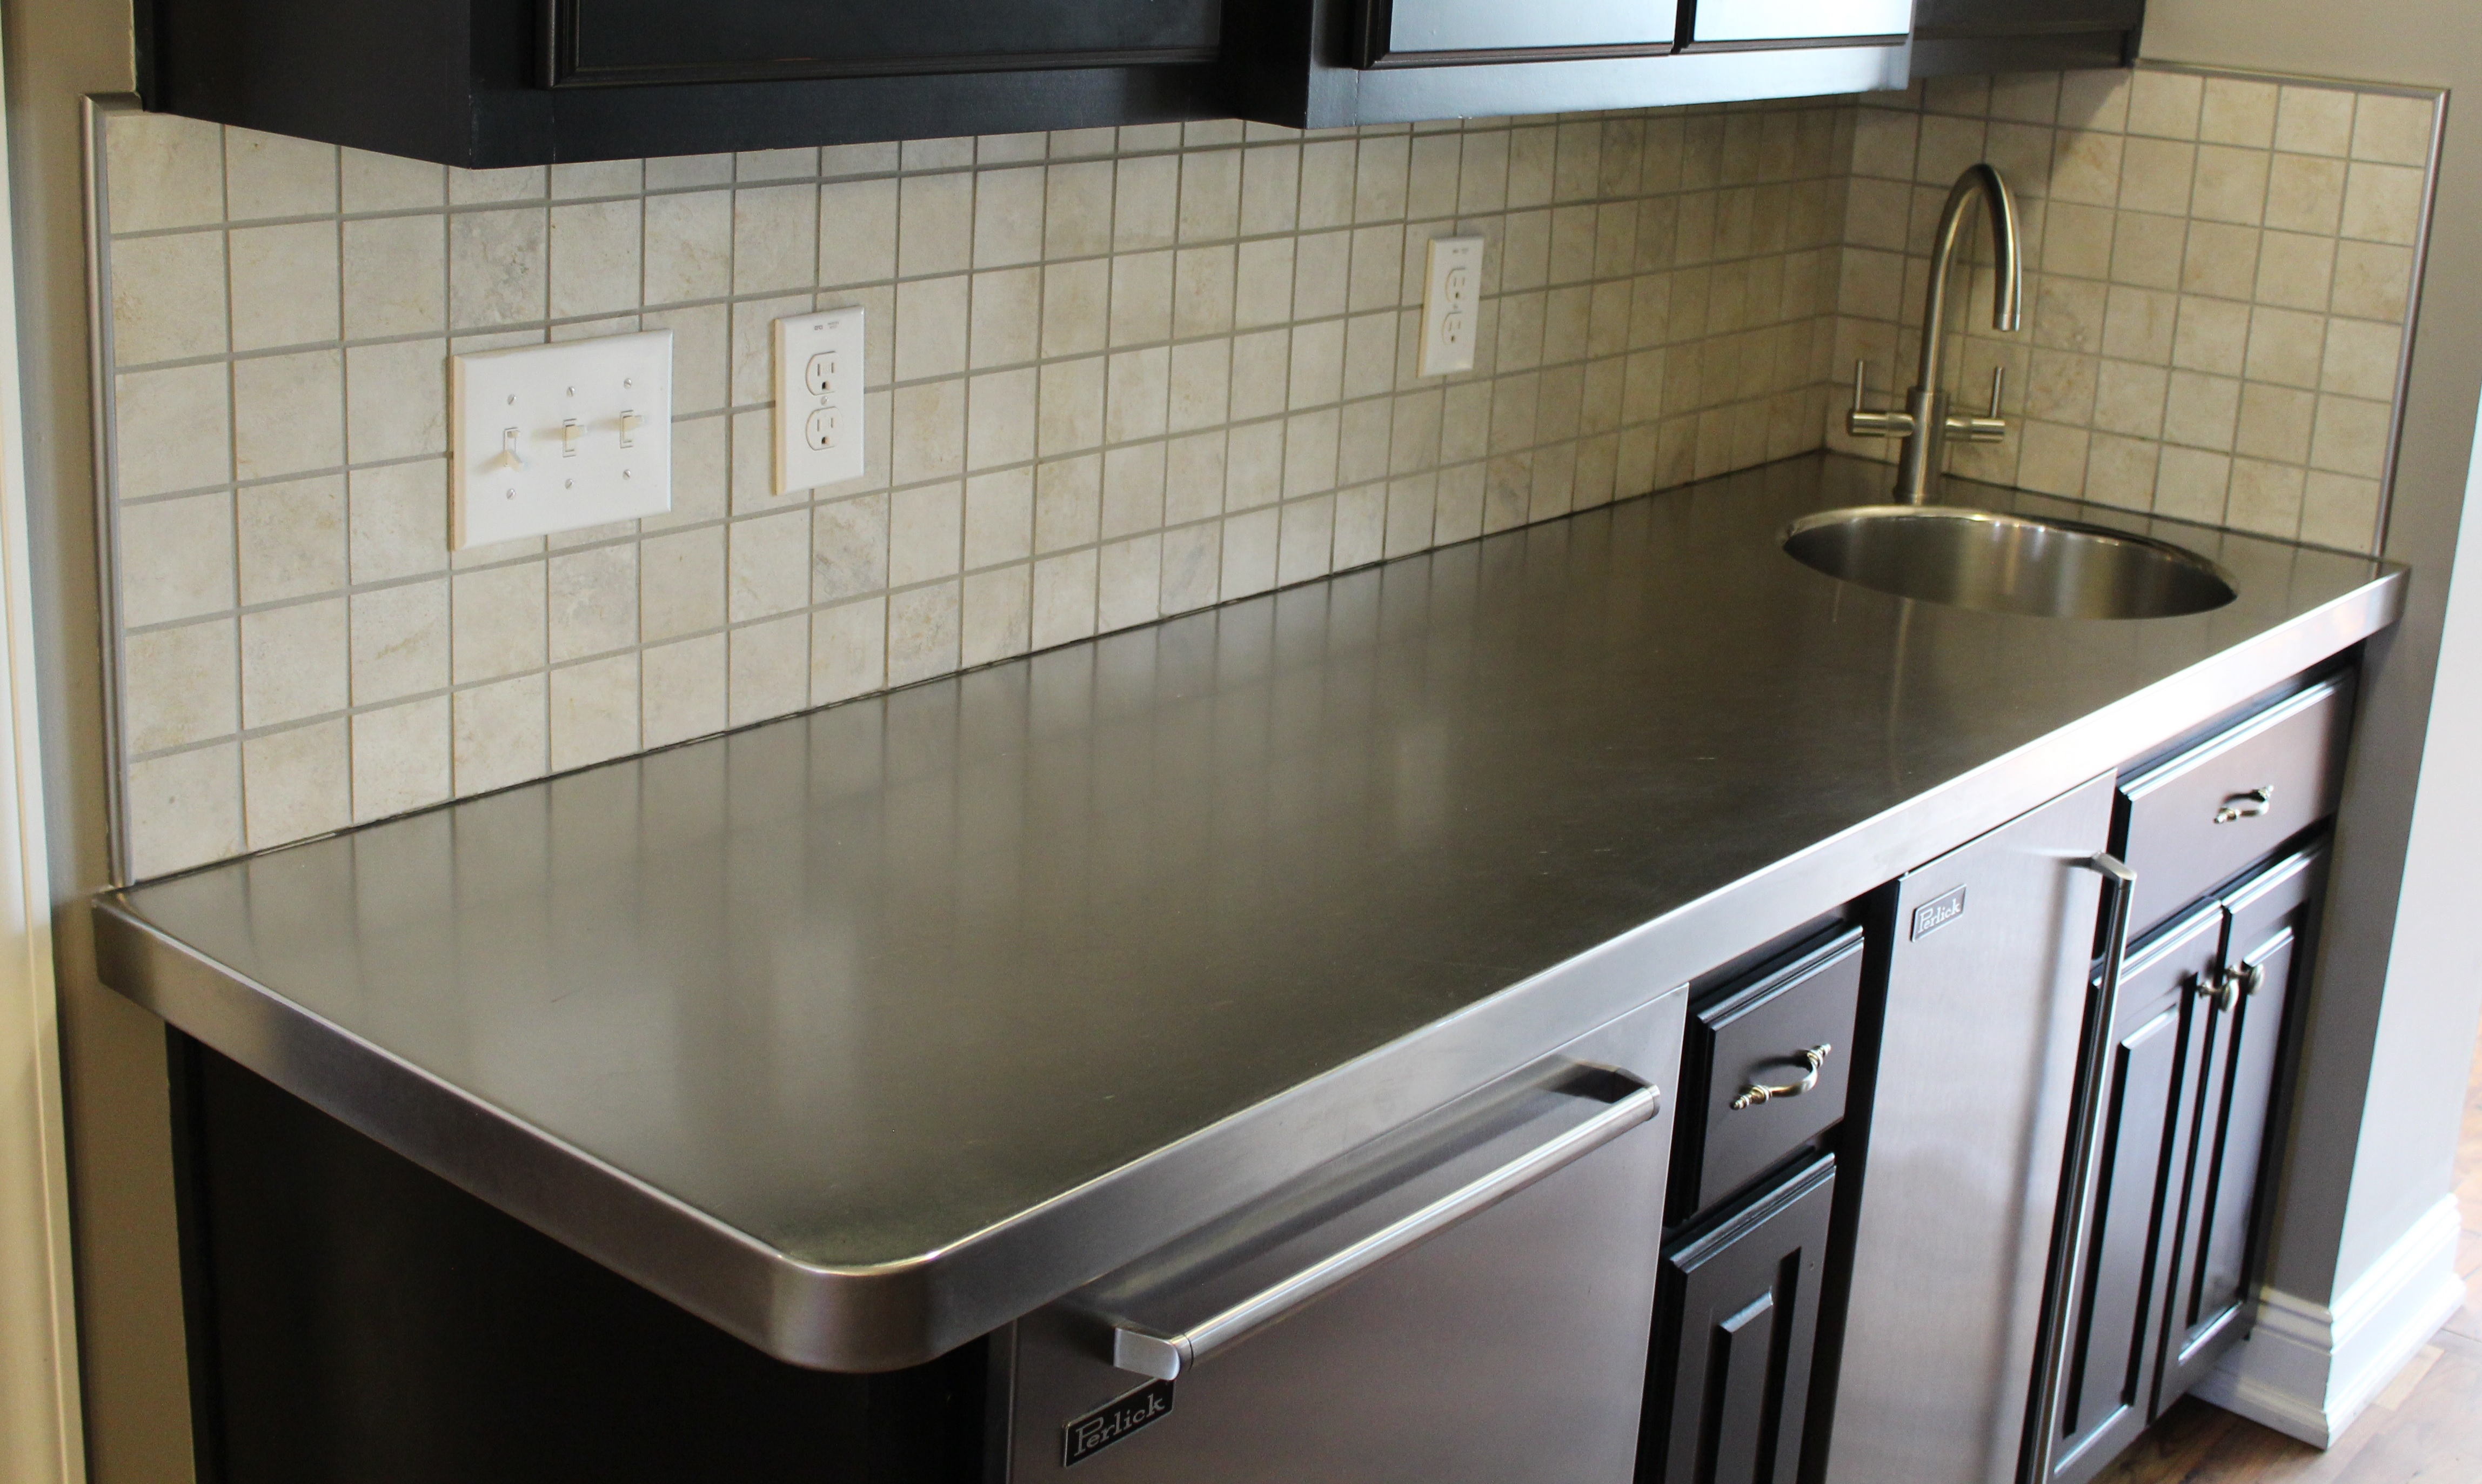 18 kitchen countertop options and ideas for 2018 for Stainless steel countertops cost per sq ft